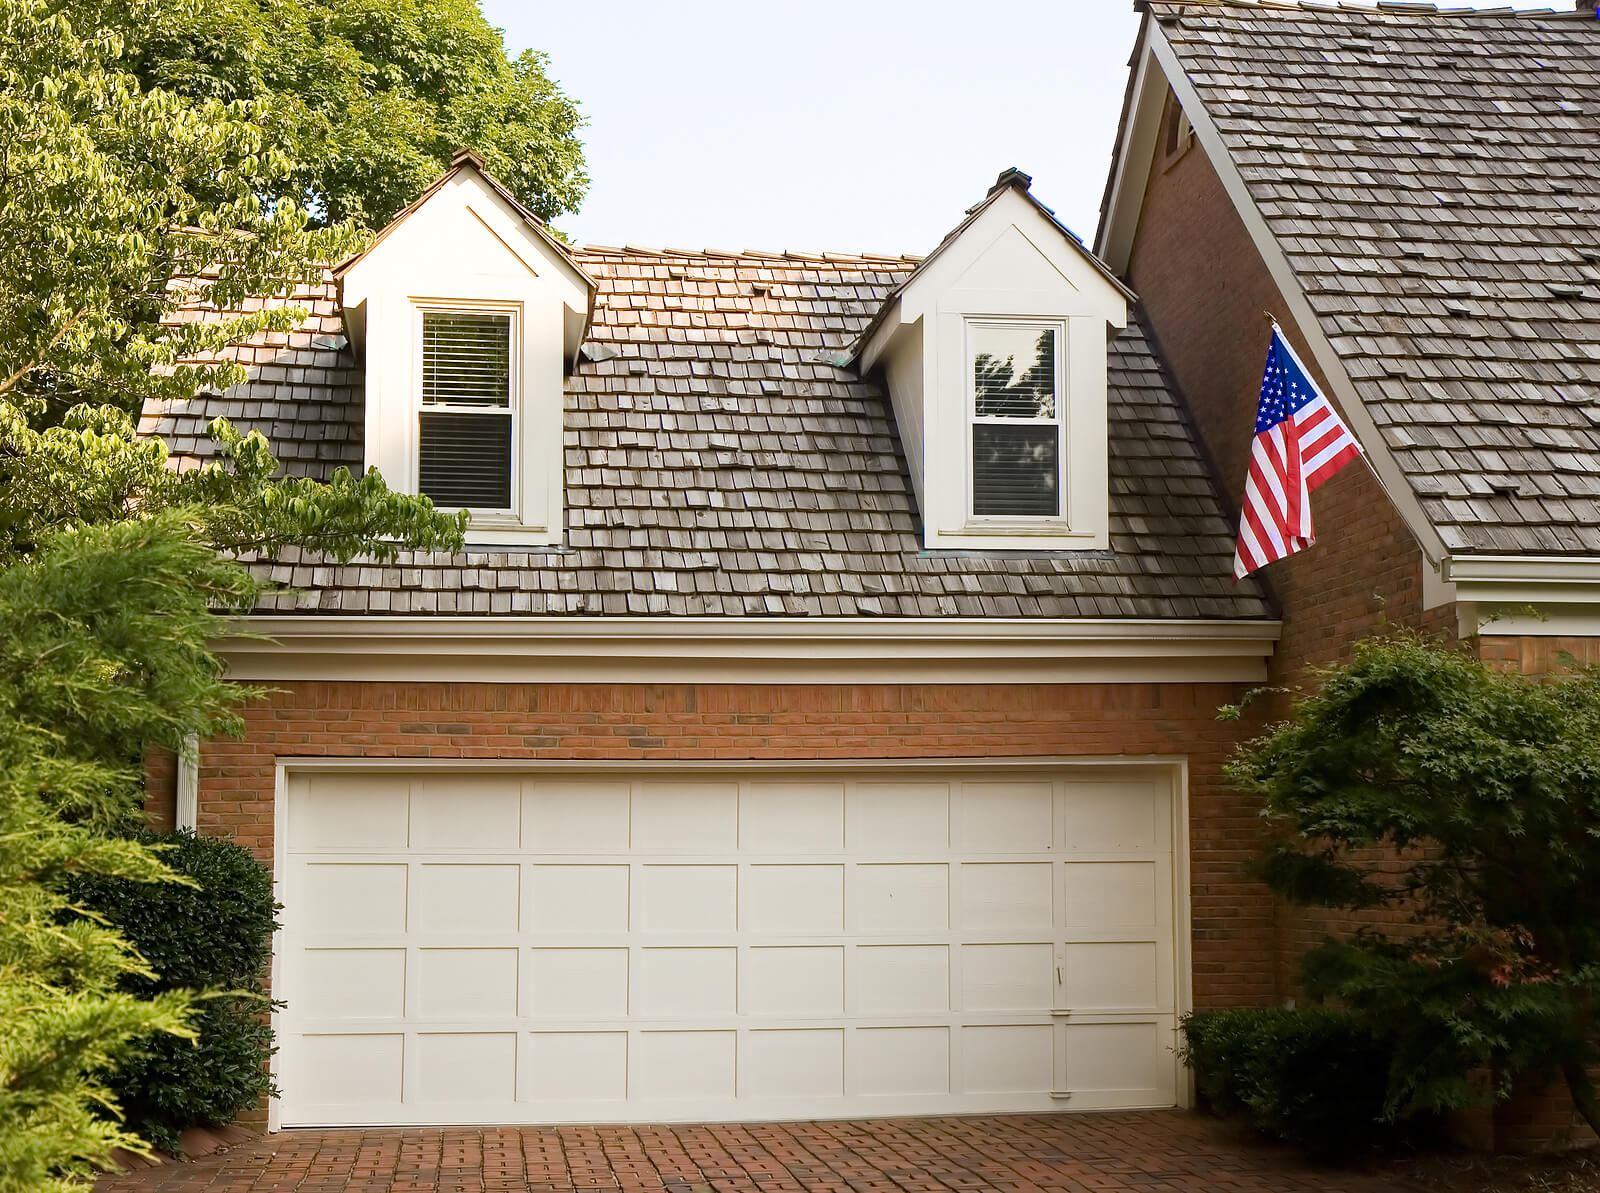 Garage door repair mississauga on by professional team garage doors mississauga rubansaba